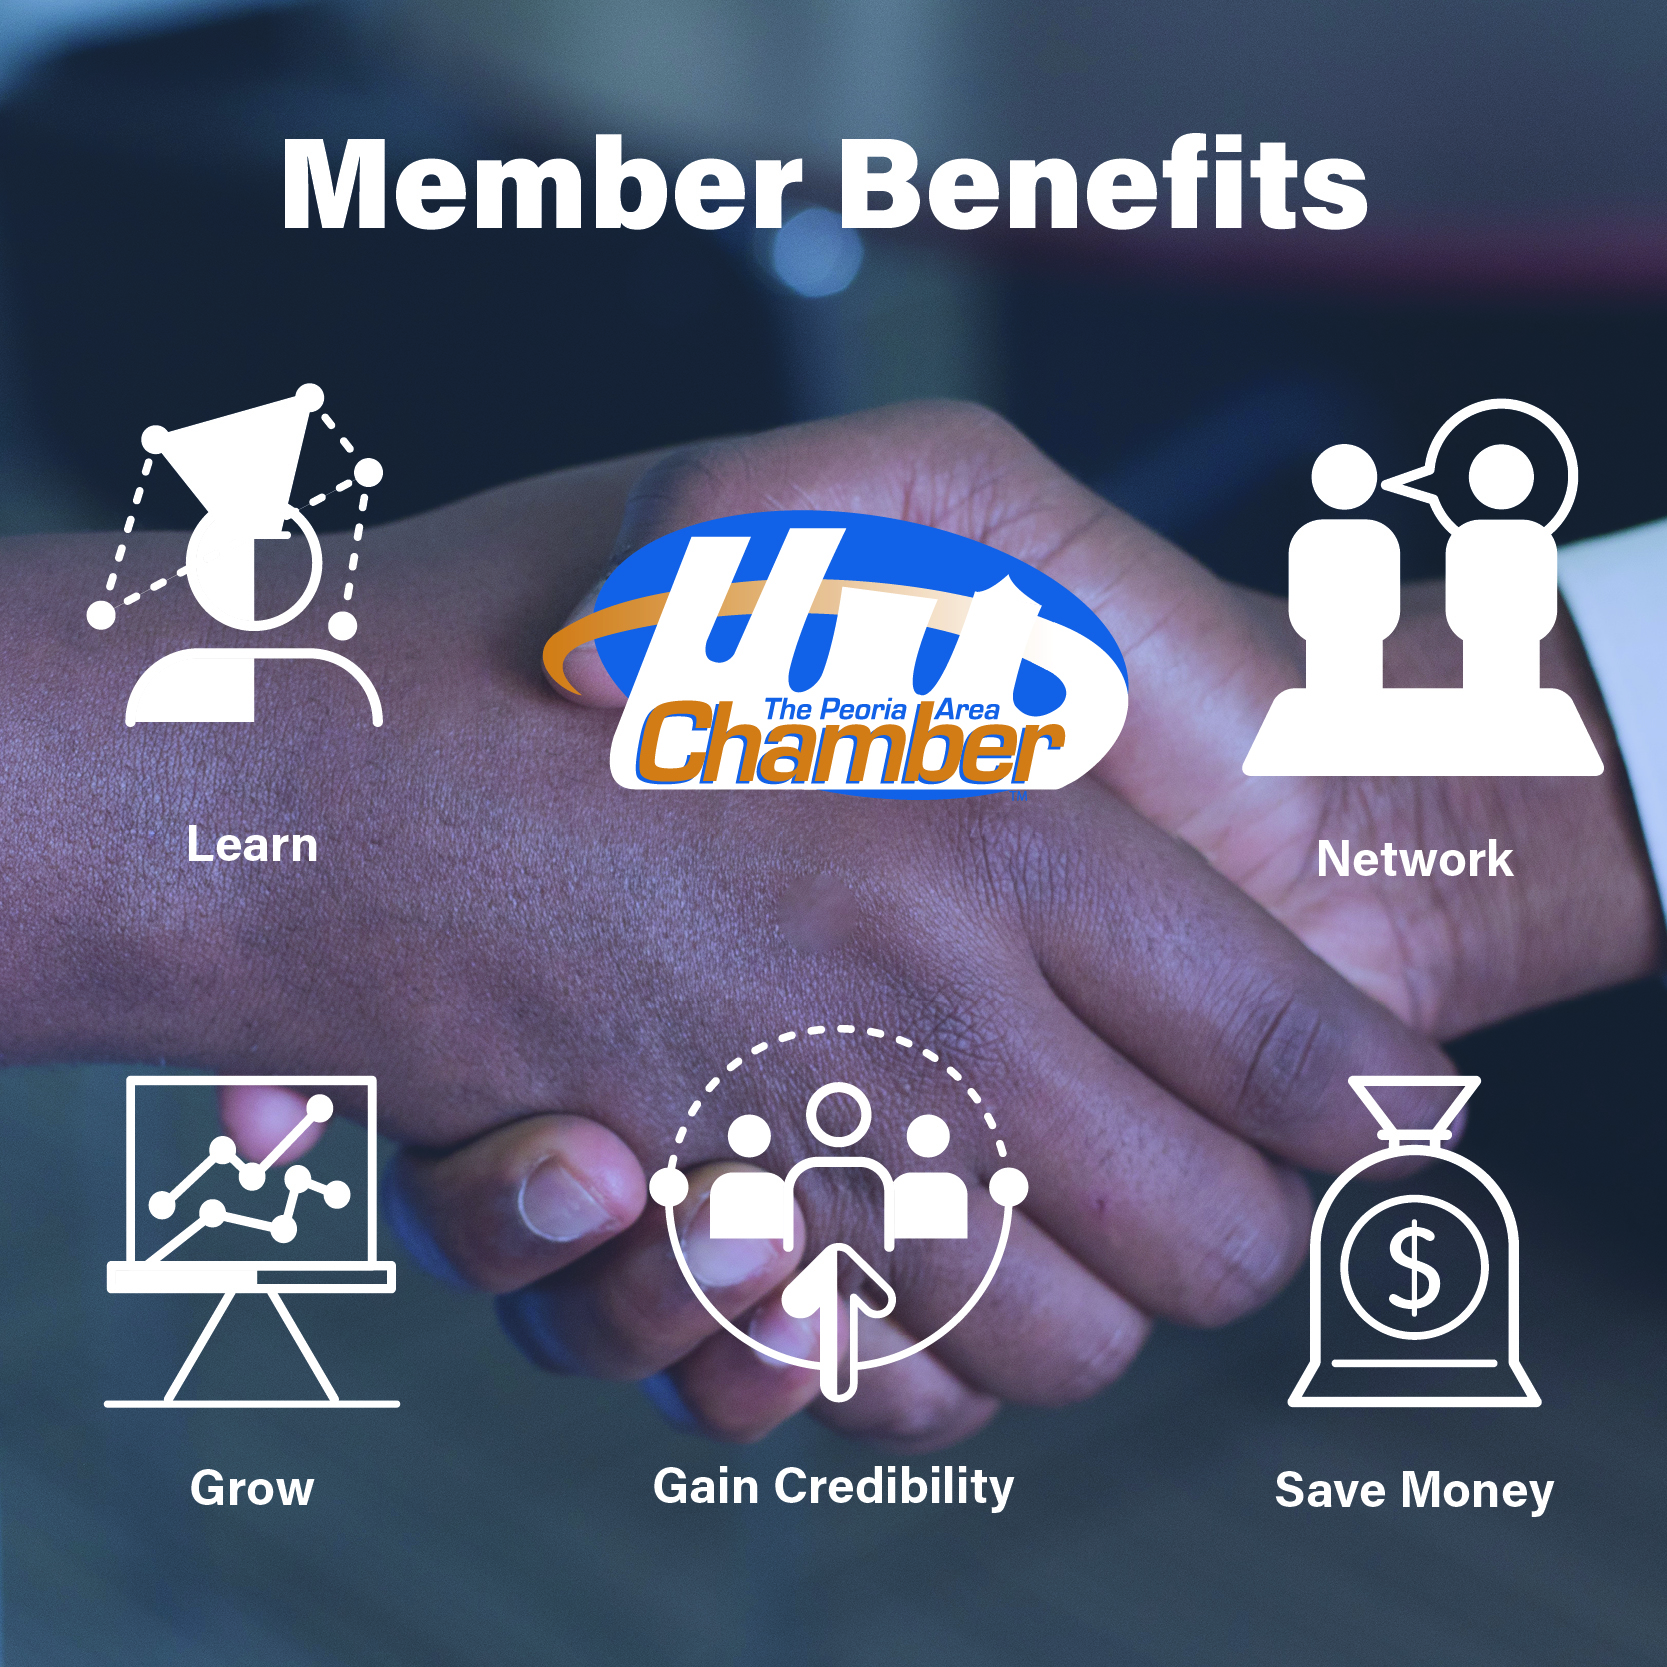 Memberbenefitgraphic